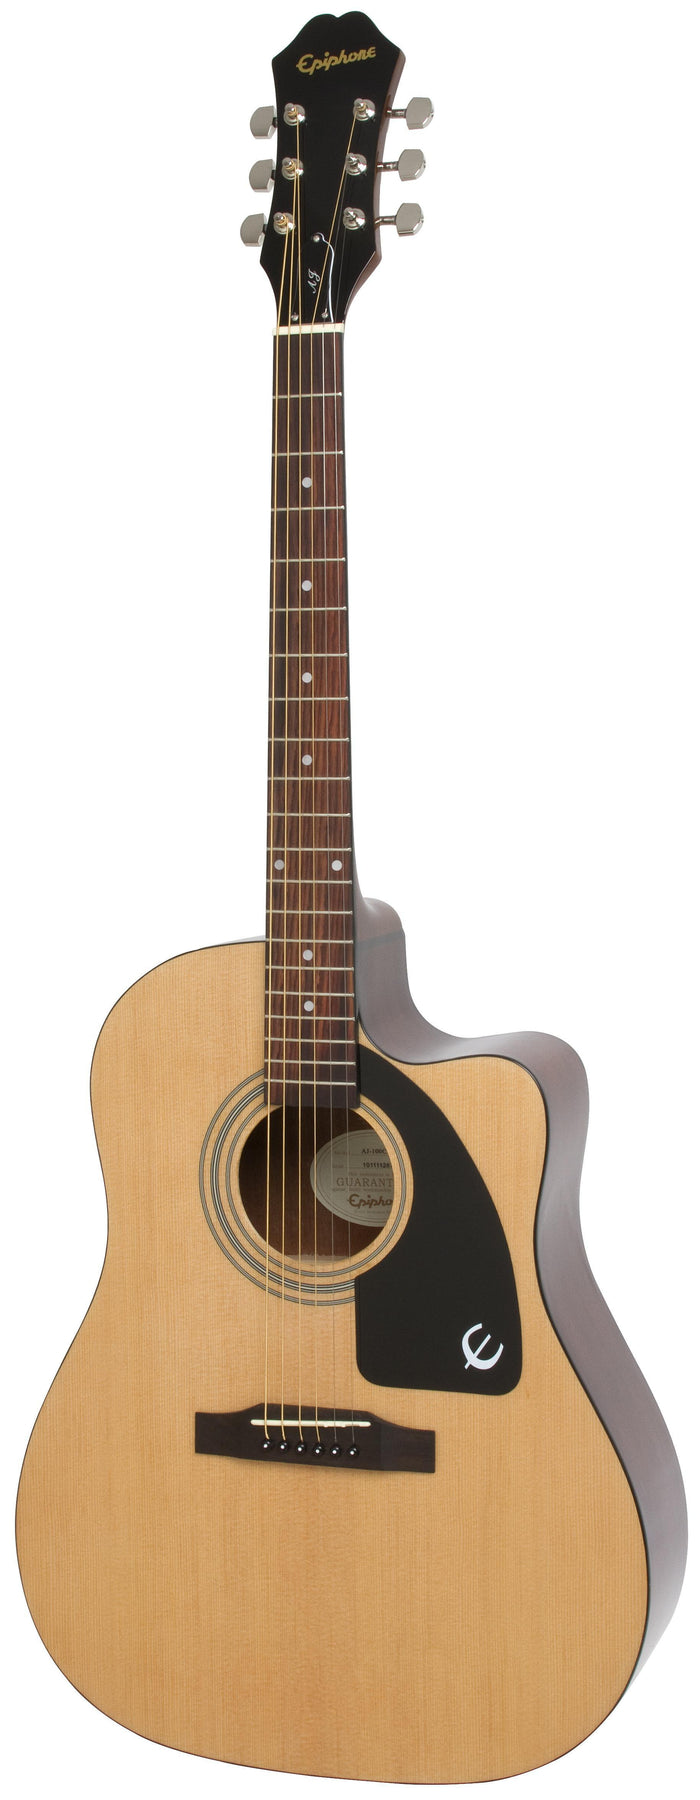 EPIPHONE AJ-100CE ACOUSTIC ELECTRIC GUITAR, ROSEWOOD NECK, NATURAL (AJ 100CE / AJ100CE)